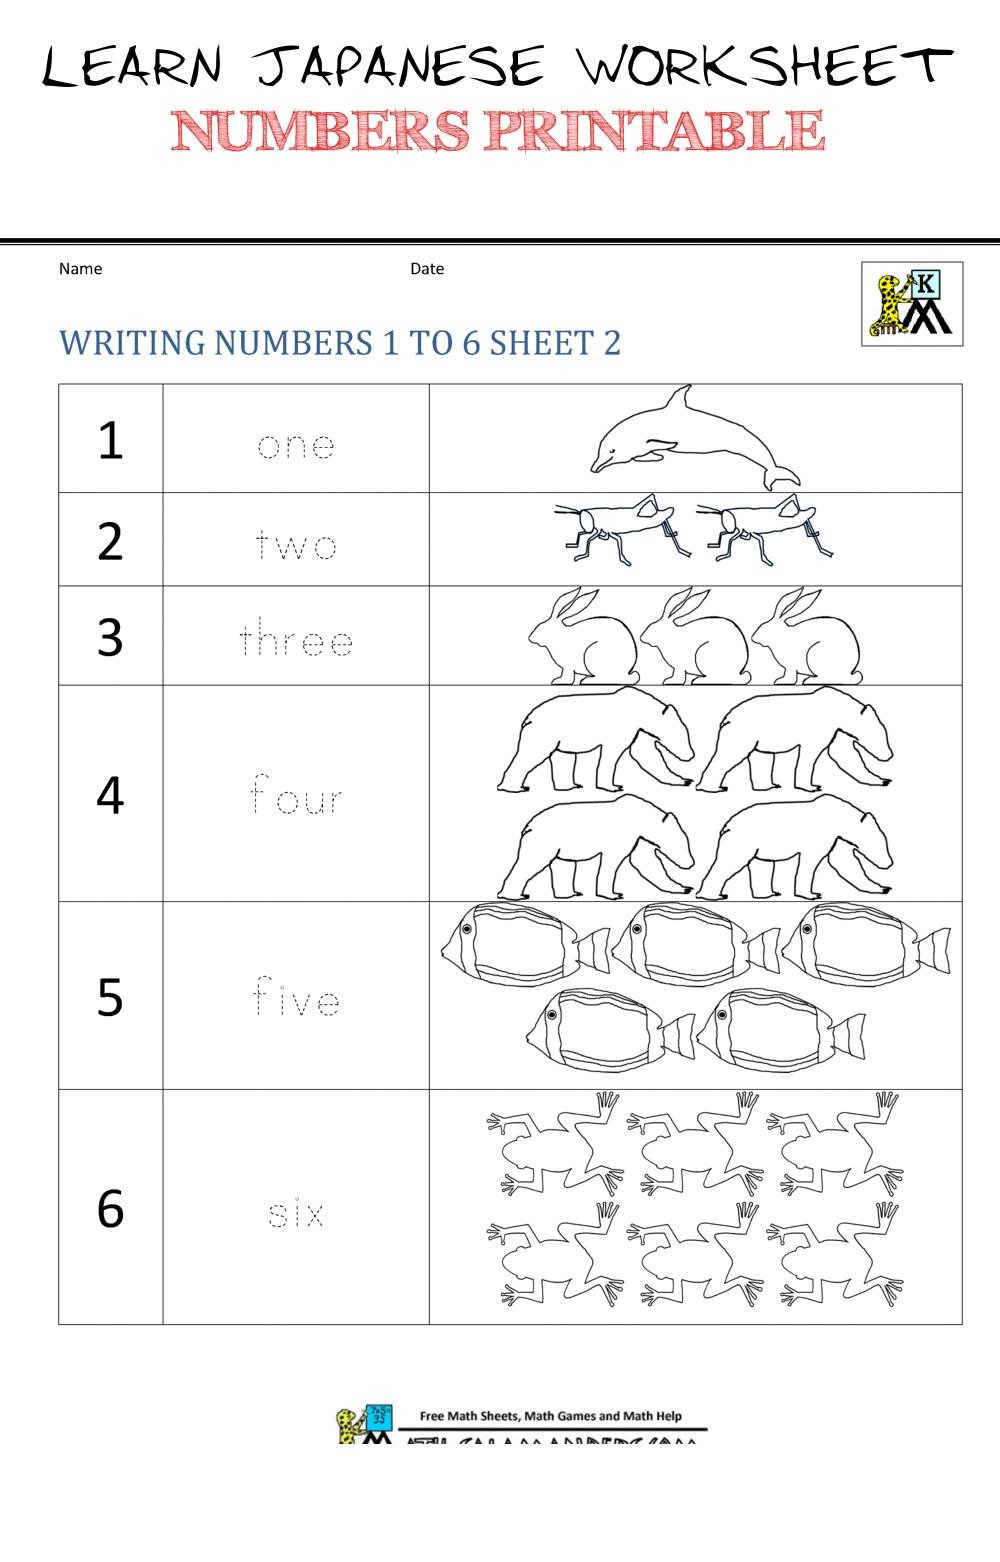 learn japanese worksheet numbers printable kindergarten number worksheets of learn japanese worksheet numbers printable pin